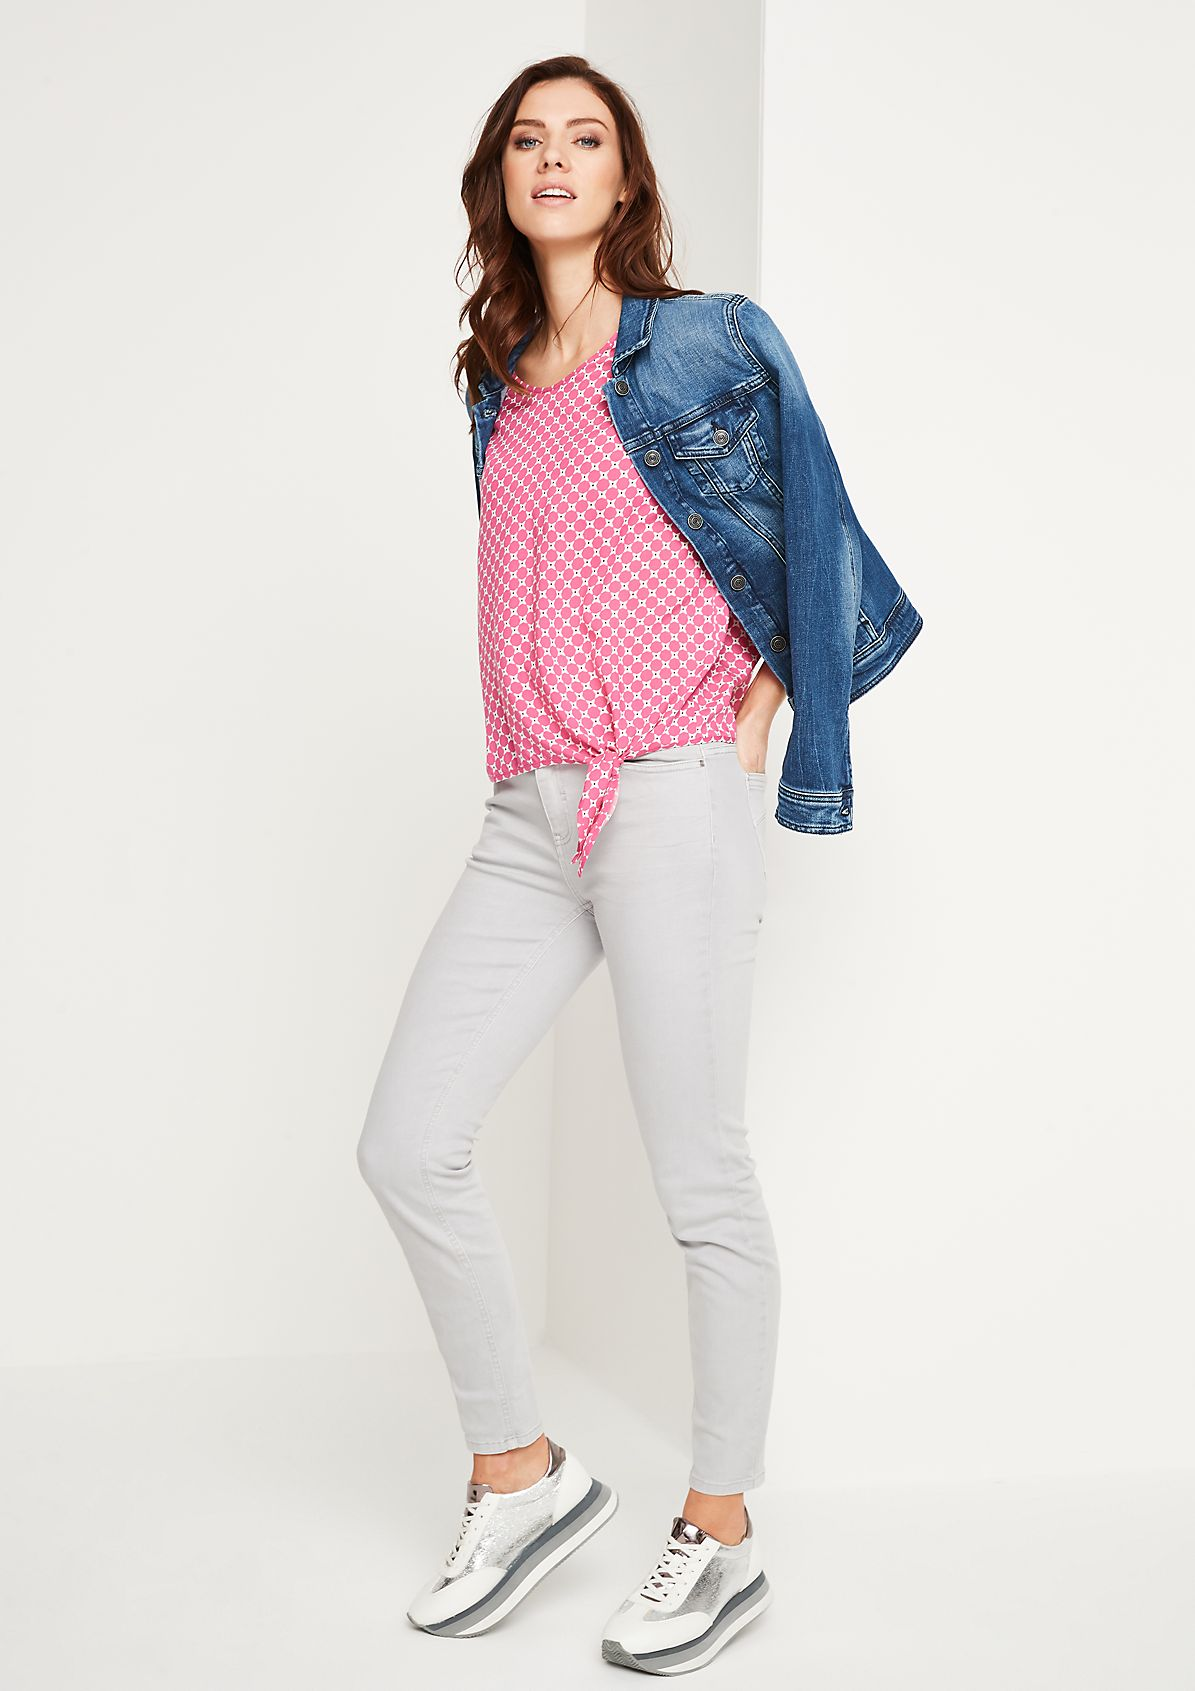 Coloured Denim-Jeans mit smarten Details